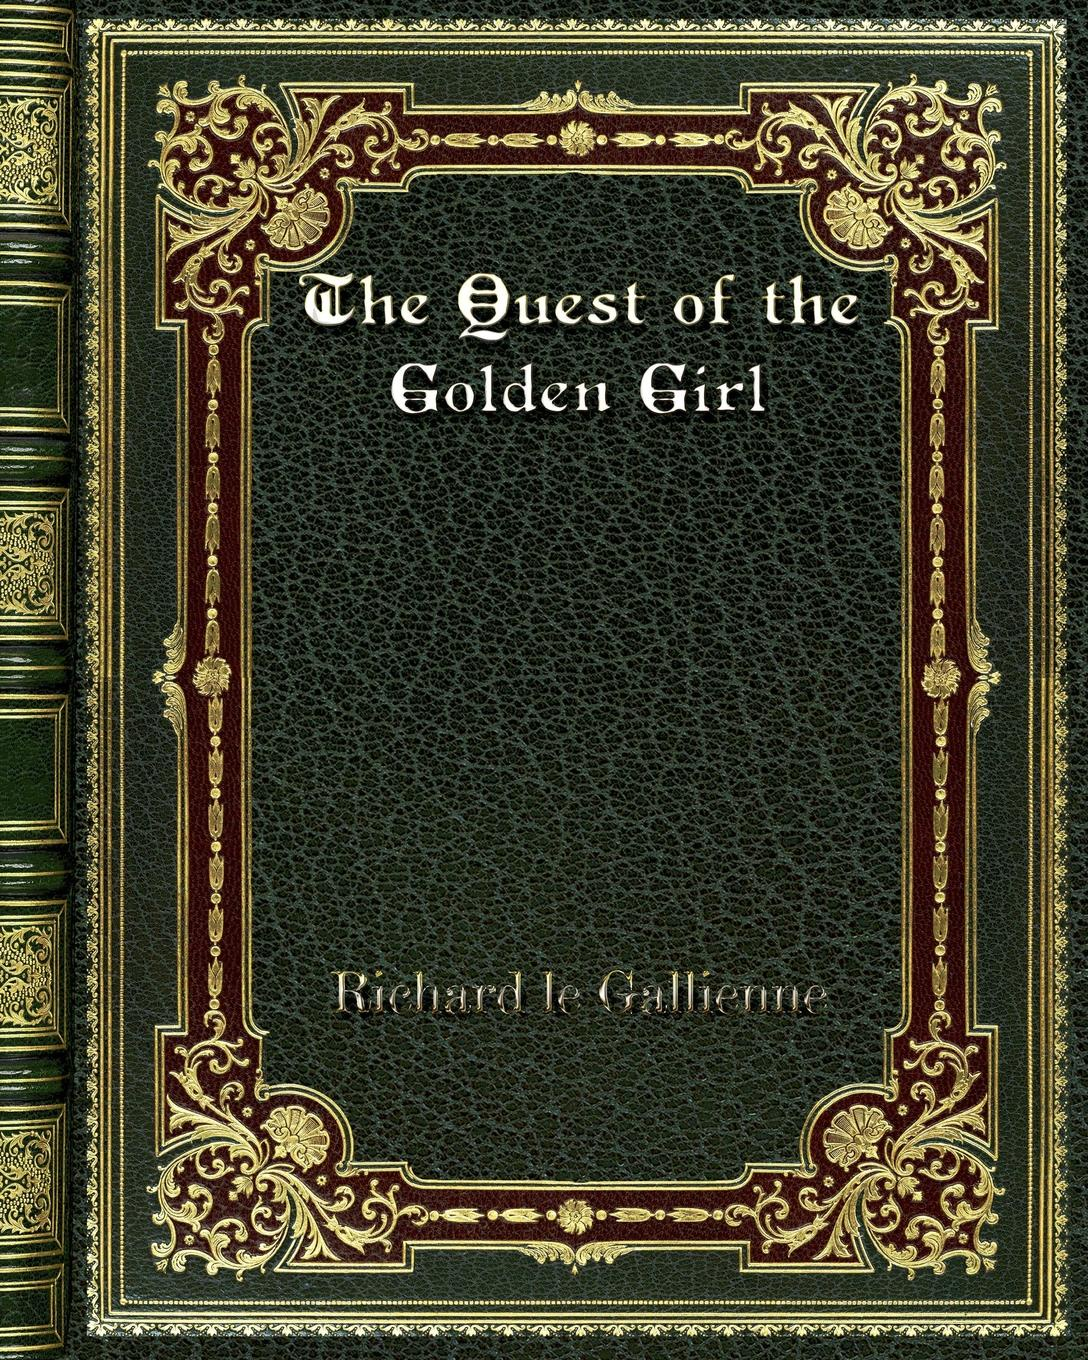 Richard le Gallienne The Quest of the Golden Girl